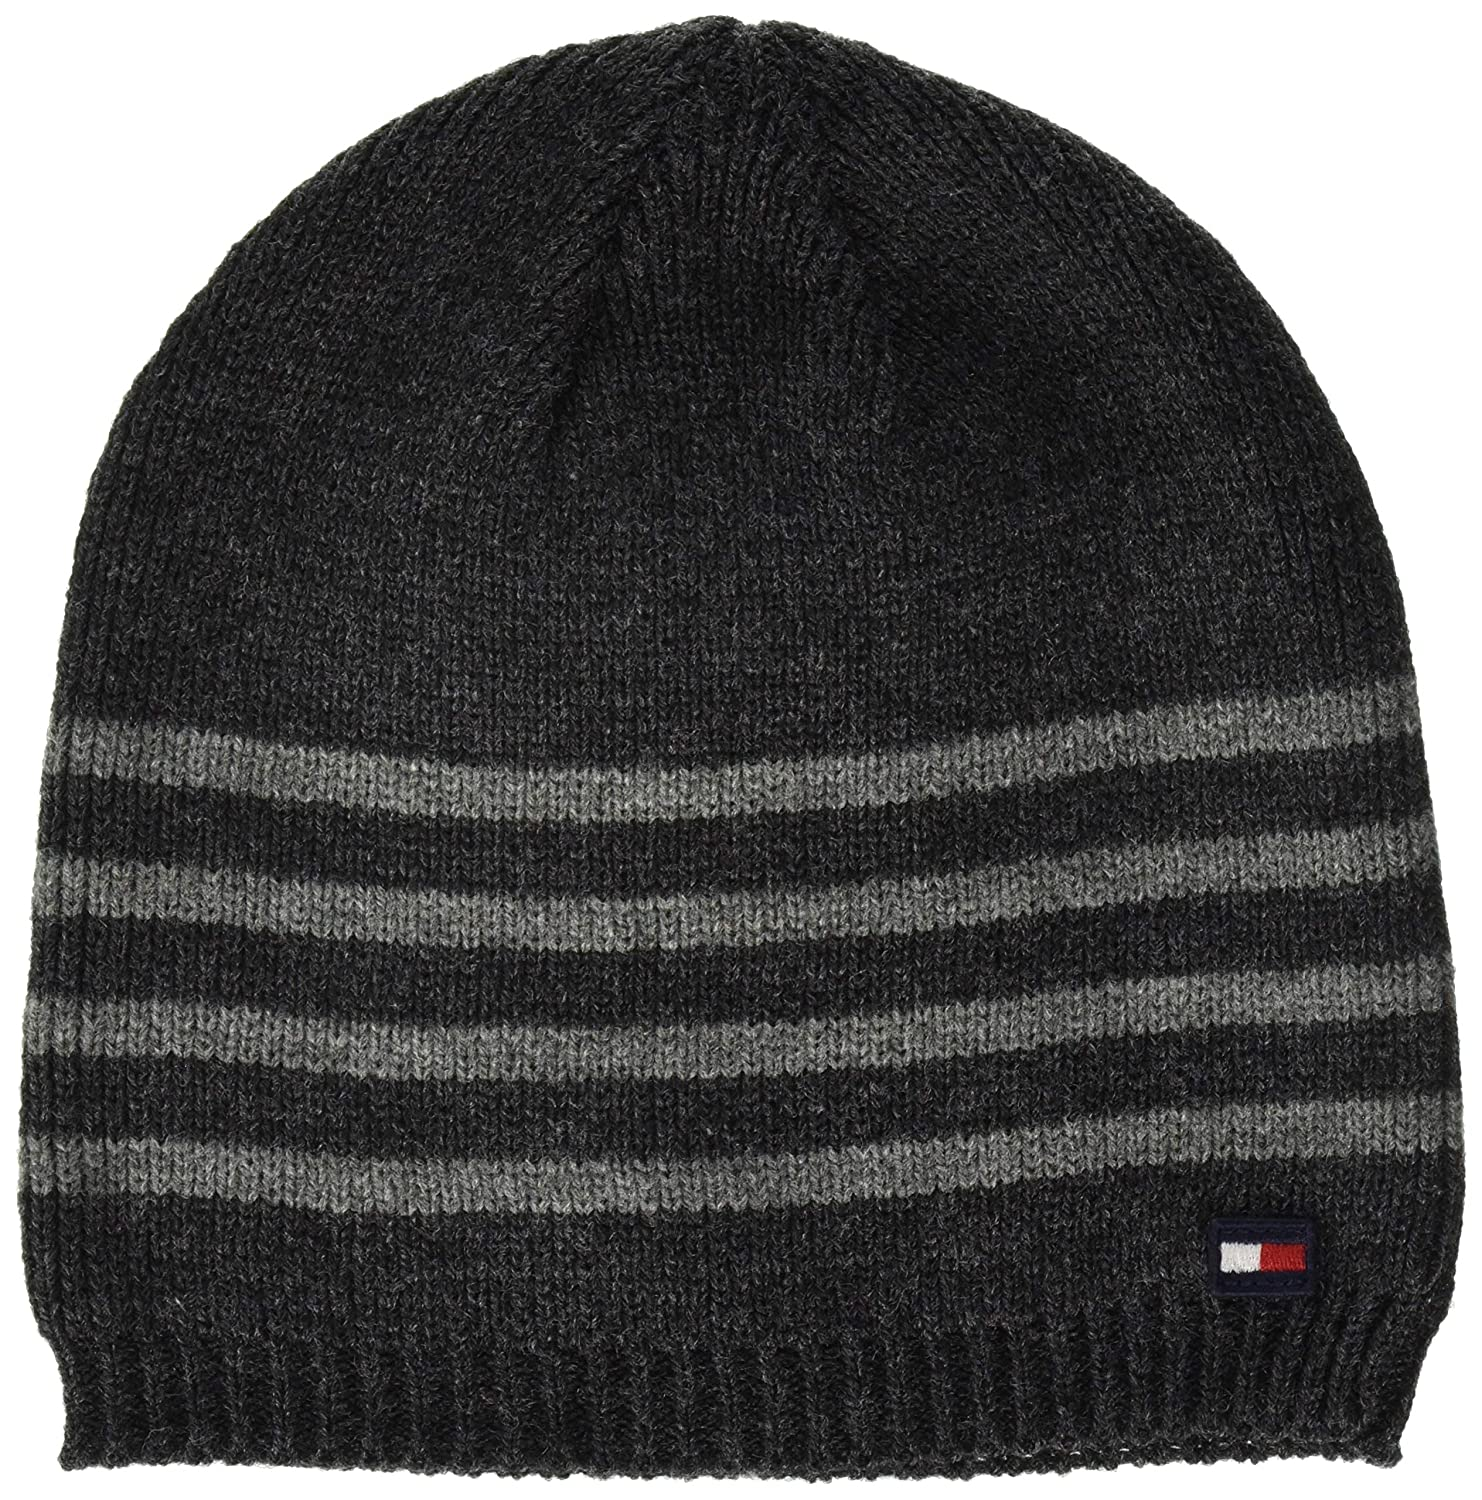 36c20c873f7 Tommy Hilfiger Men s Cold Weather Knit Beanie